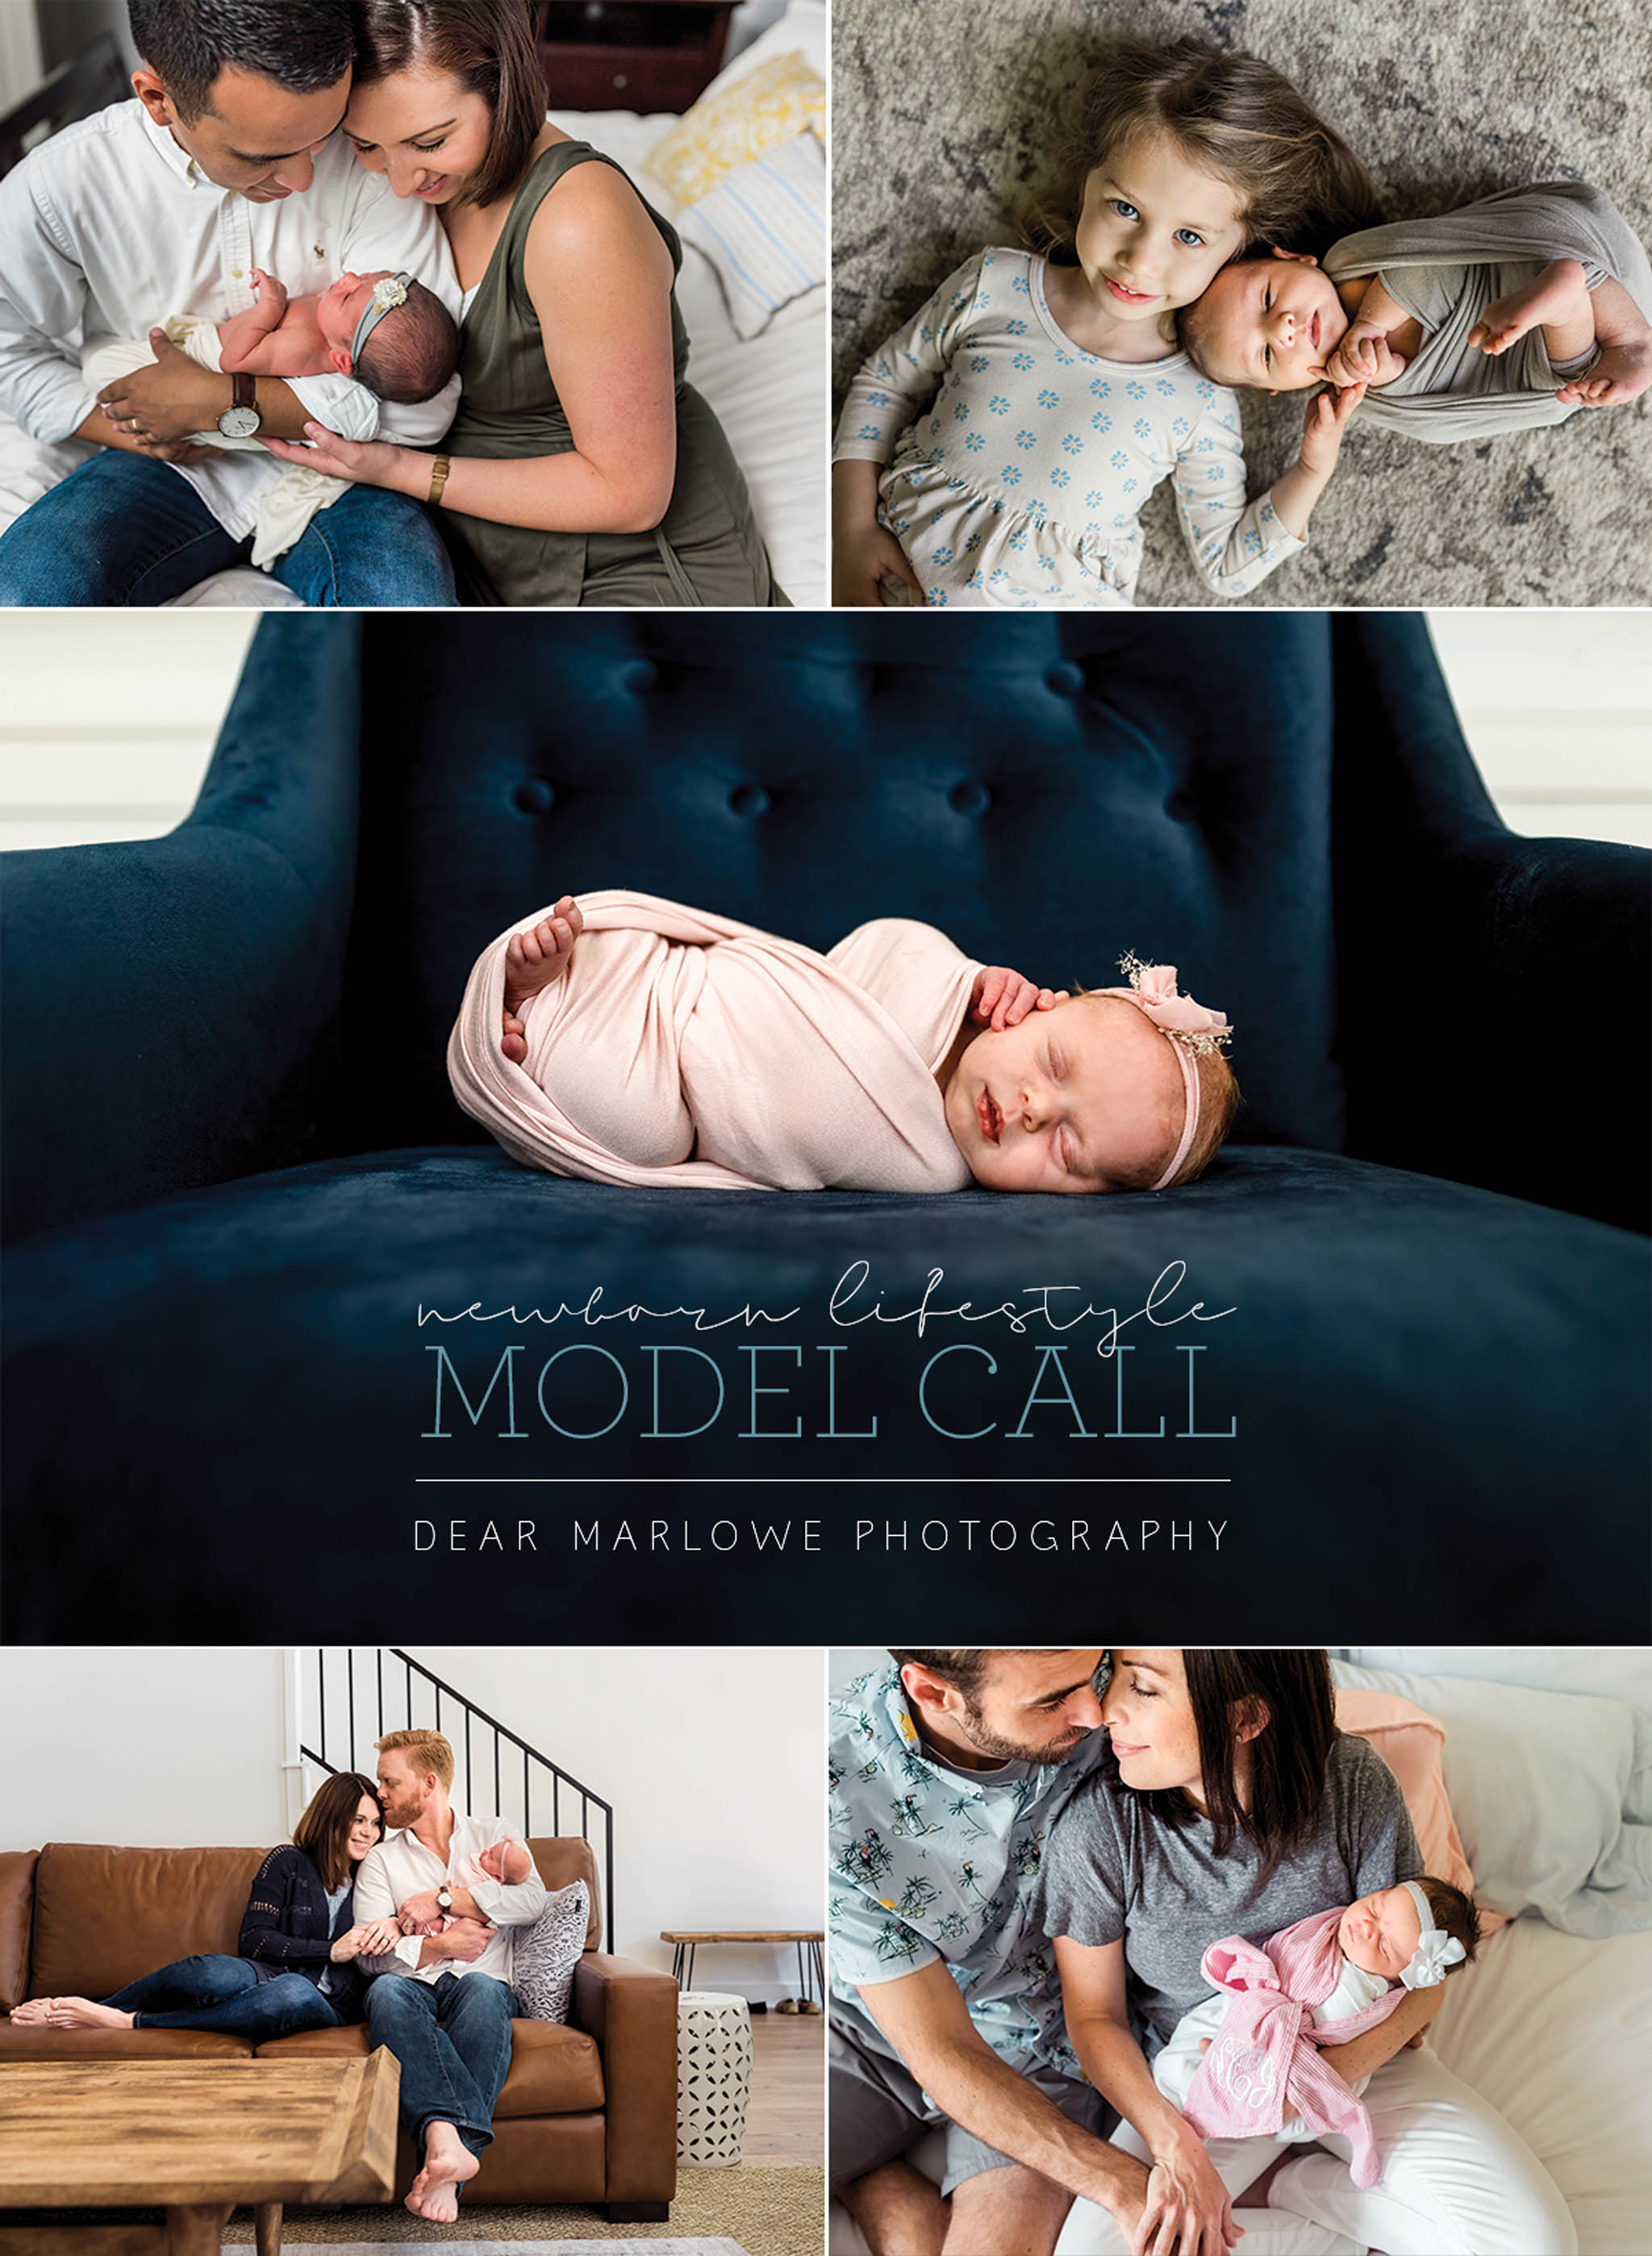 Model Call for Houston and surrounding areas for an expecting mama interested in entering our newborn lifestyle model call